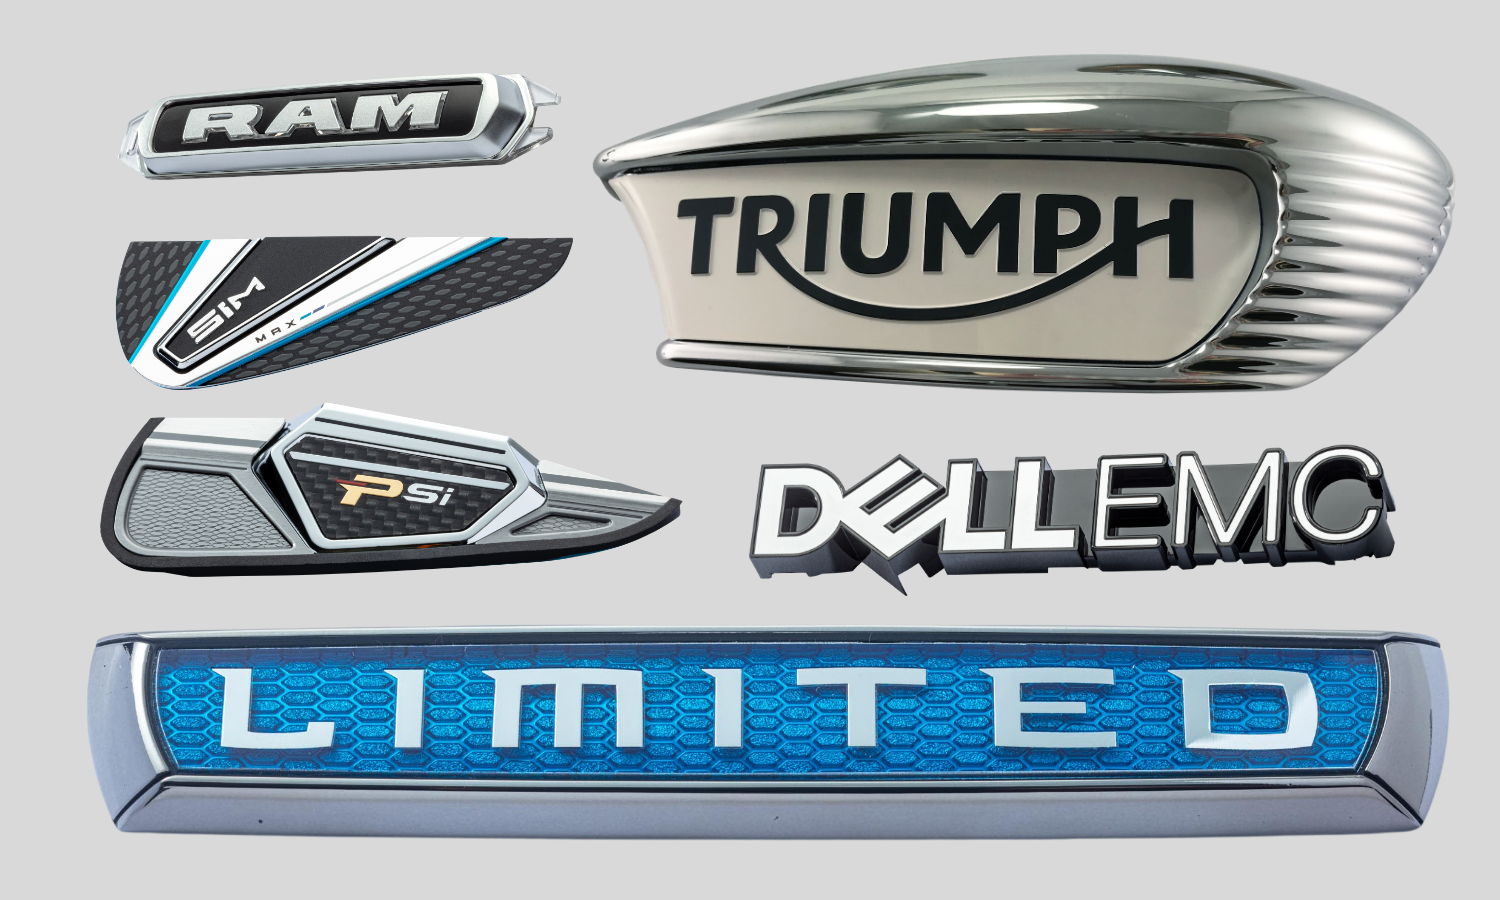 RAM truck name plate, golf iron cavity badges, triumph motorcycle tank badge with white background, black letters, and chrome zinc bezel, DELLEMC black name plate with satin chrome letters, rectangular name plate with chrome text that says LIMITED on top of a transparent blue background